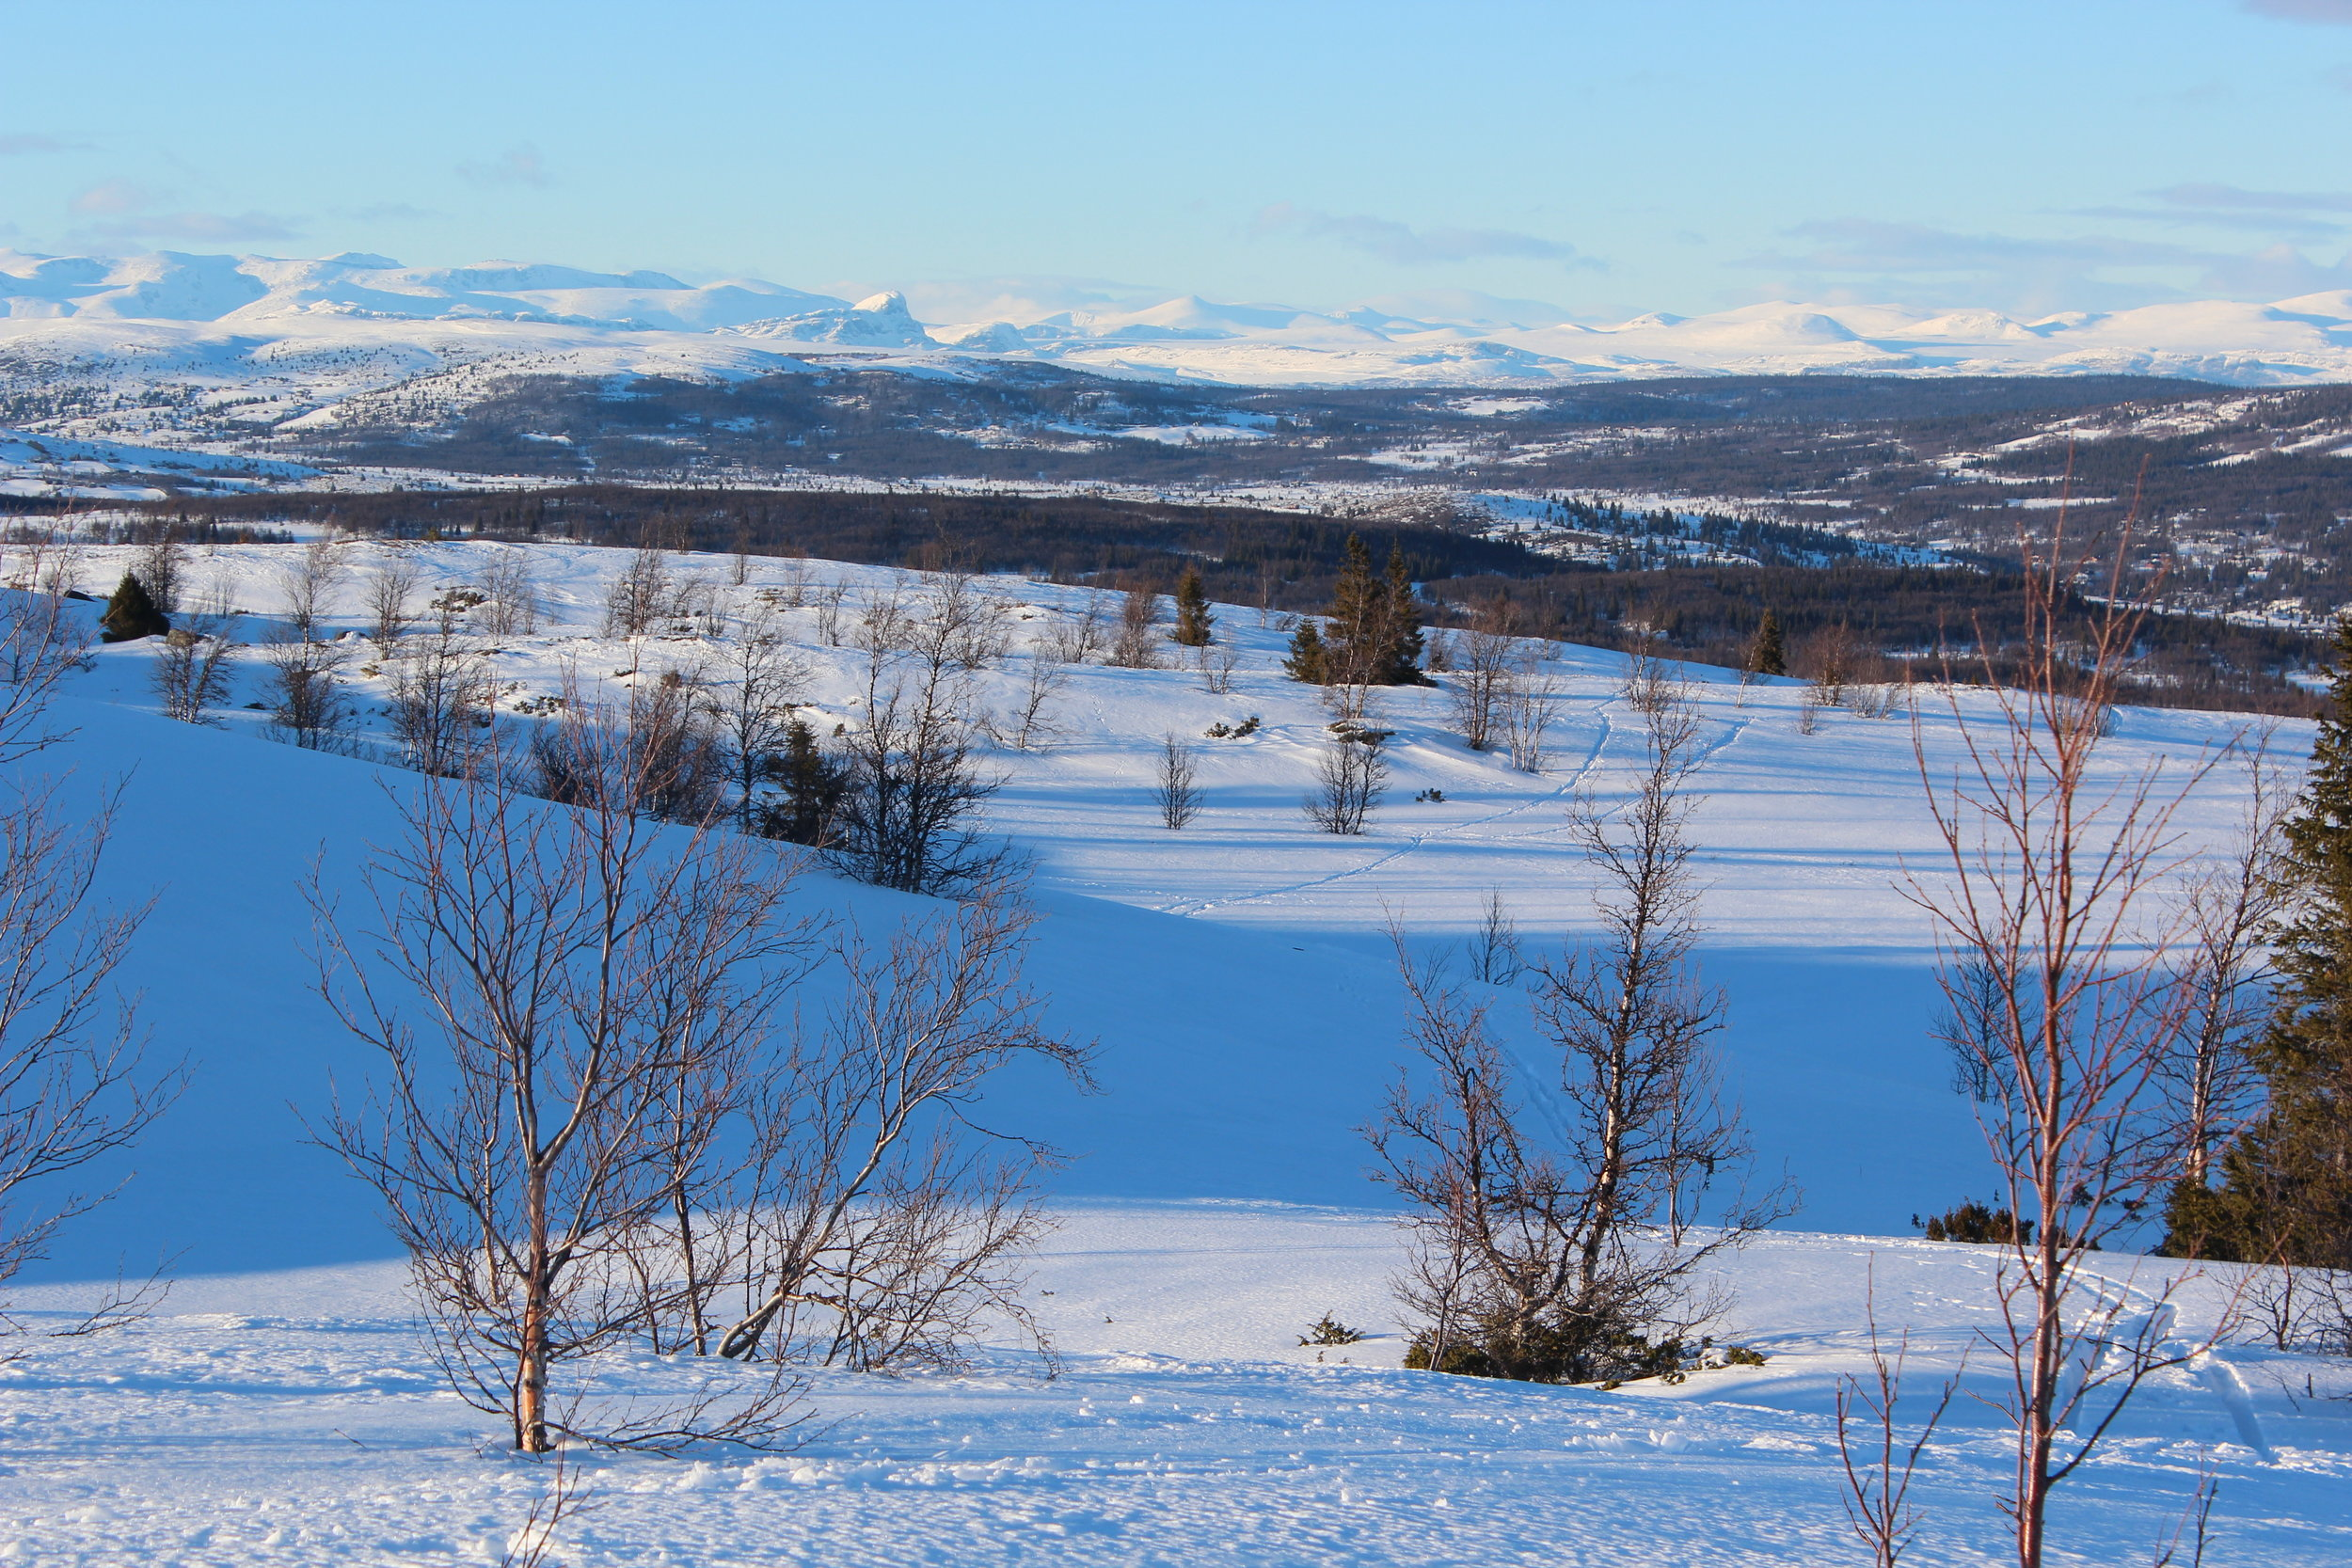 """The road into the Nøsen Yoga Retreat Center is aptly called """"Panorama Road"""". This picture was taken on March 18 during our visit to Nøsen, looking west, 10 minutes from the centre.When the workshop takes place in September the snow in the lowlands will have disappeared, but some may remain on the peaks."""